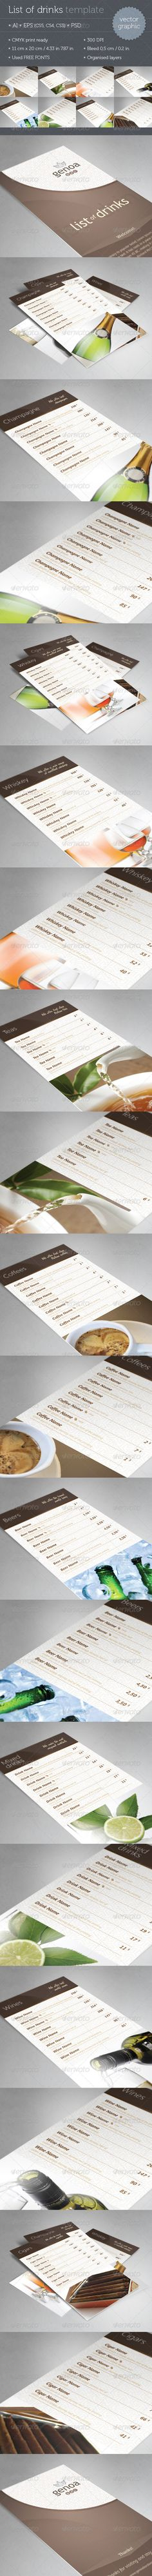 Genoa List of Drinks Template  #cocktails template #minimal #list of drinks • Click here to download ! http://graphicriver.net/item/genoa-list-of-drinks-template/2798372?s_rank=272&ref=pxcr